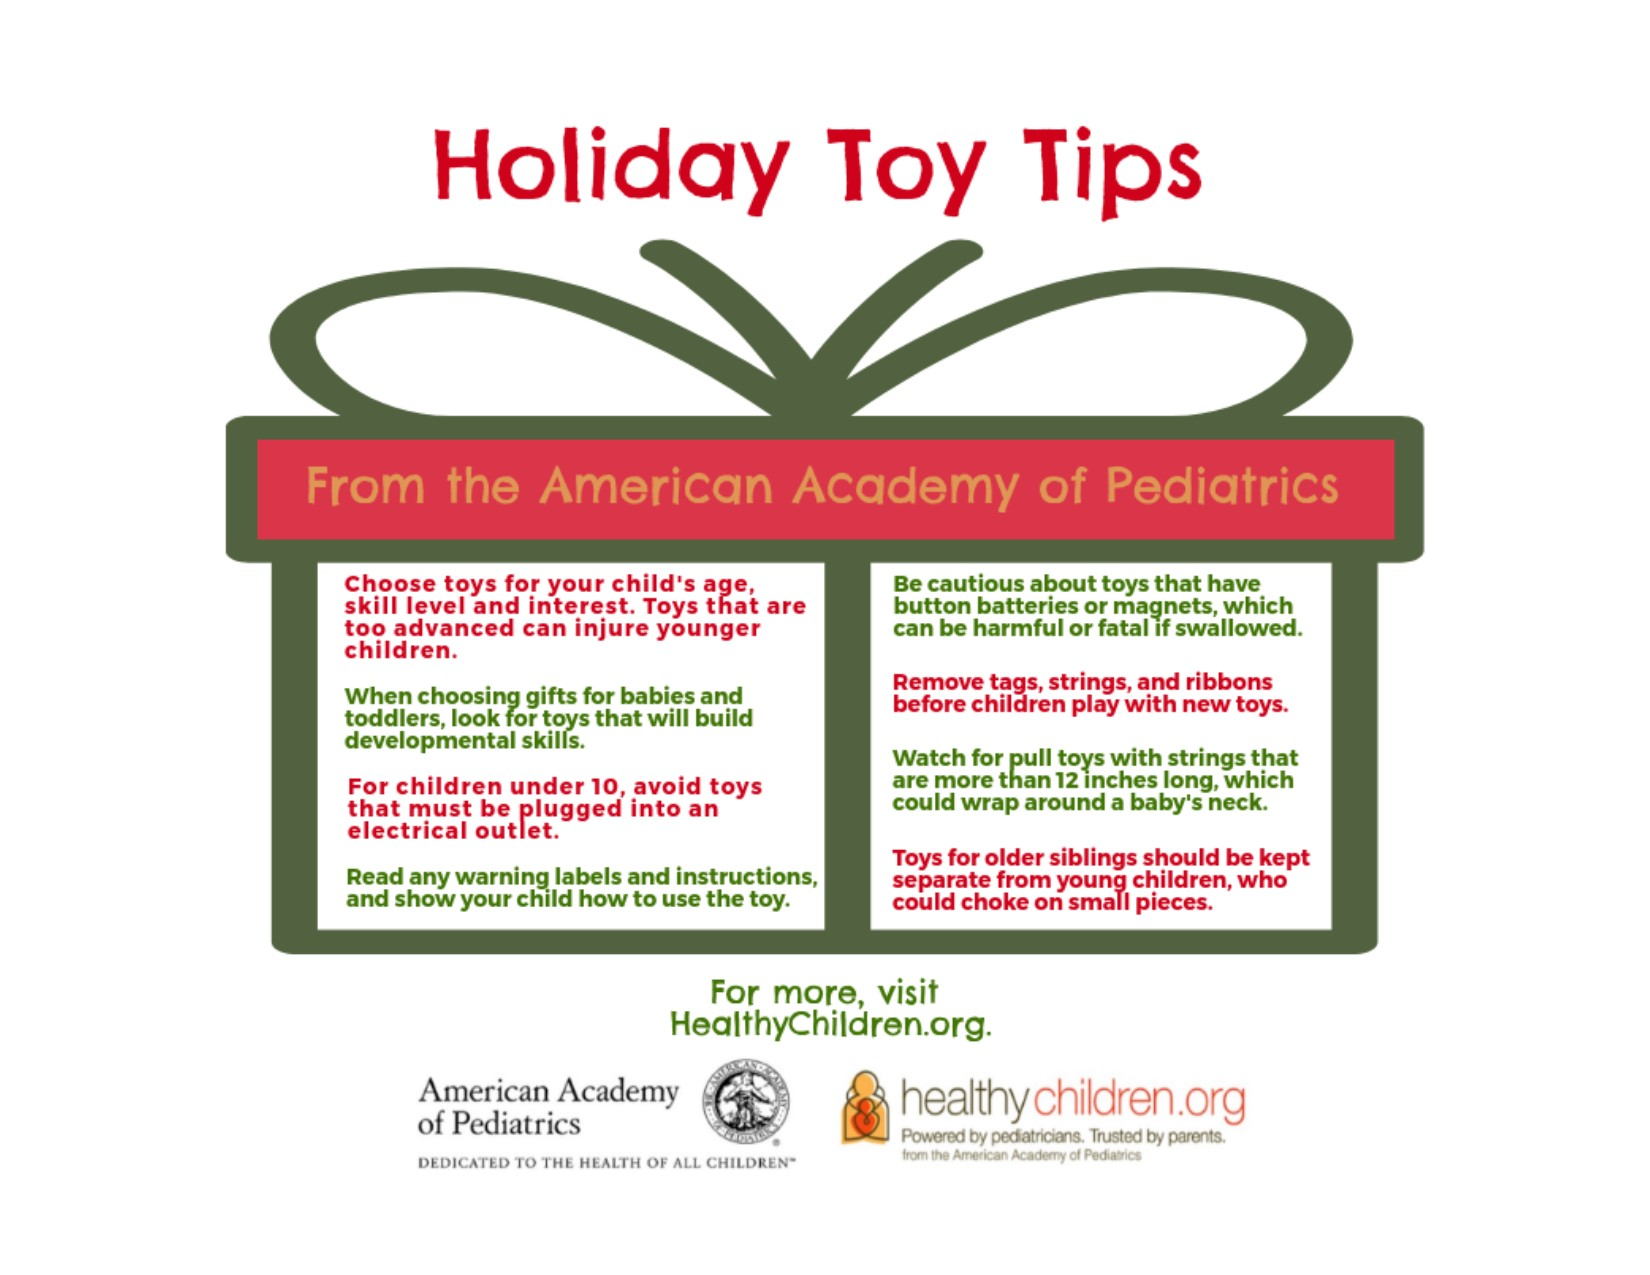 https://www.healthychildren.org/SiteCollectionImagesArticleImages/Holiday-Toy-Tips.jpg